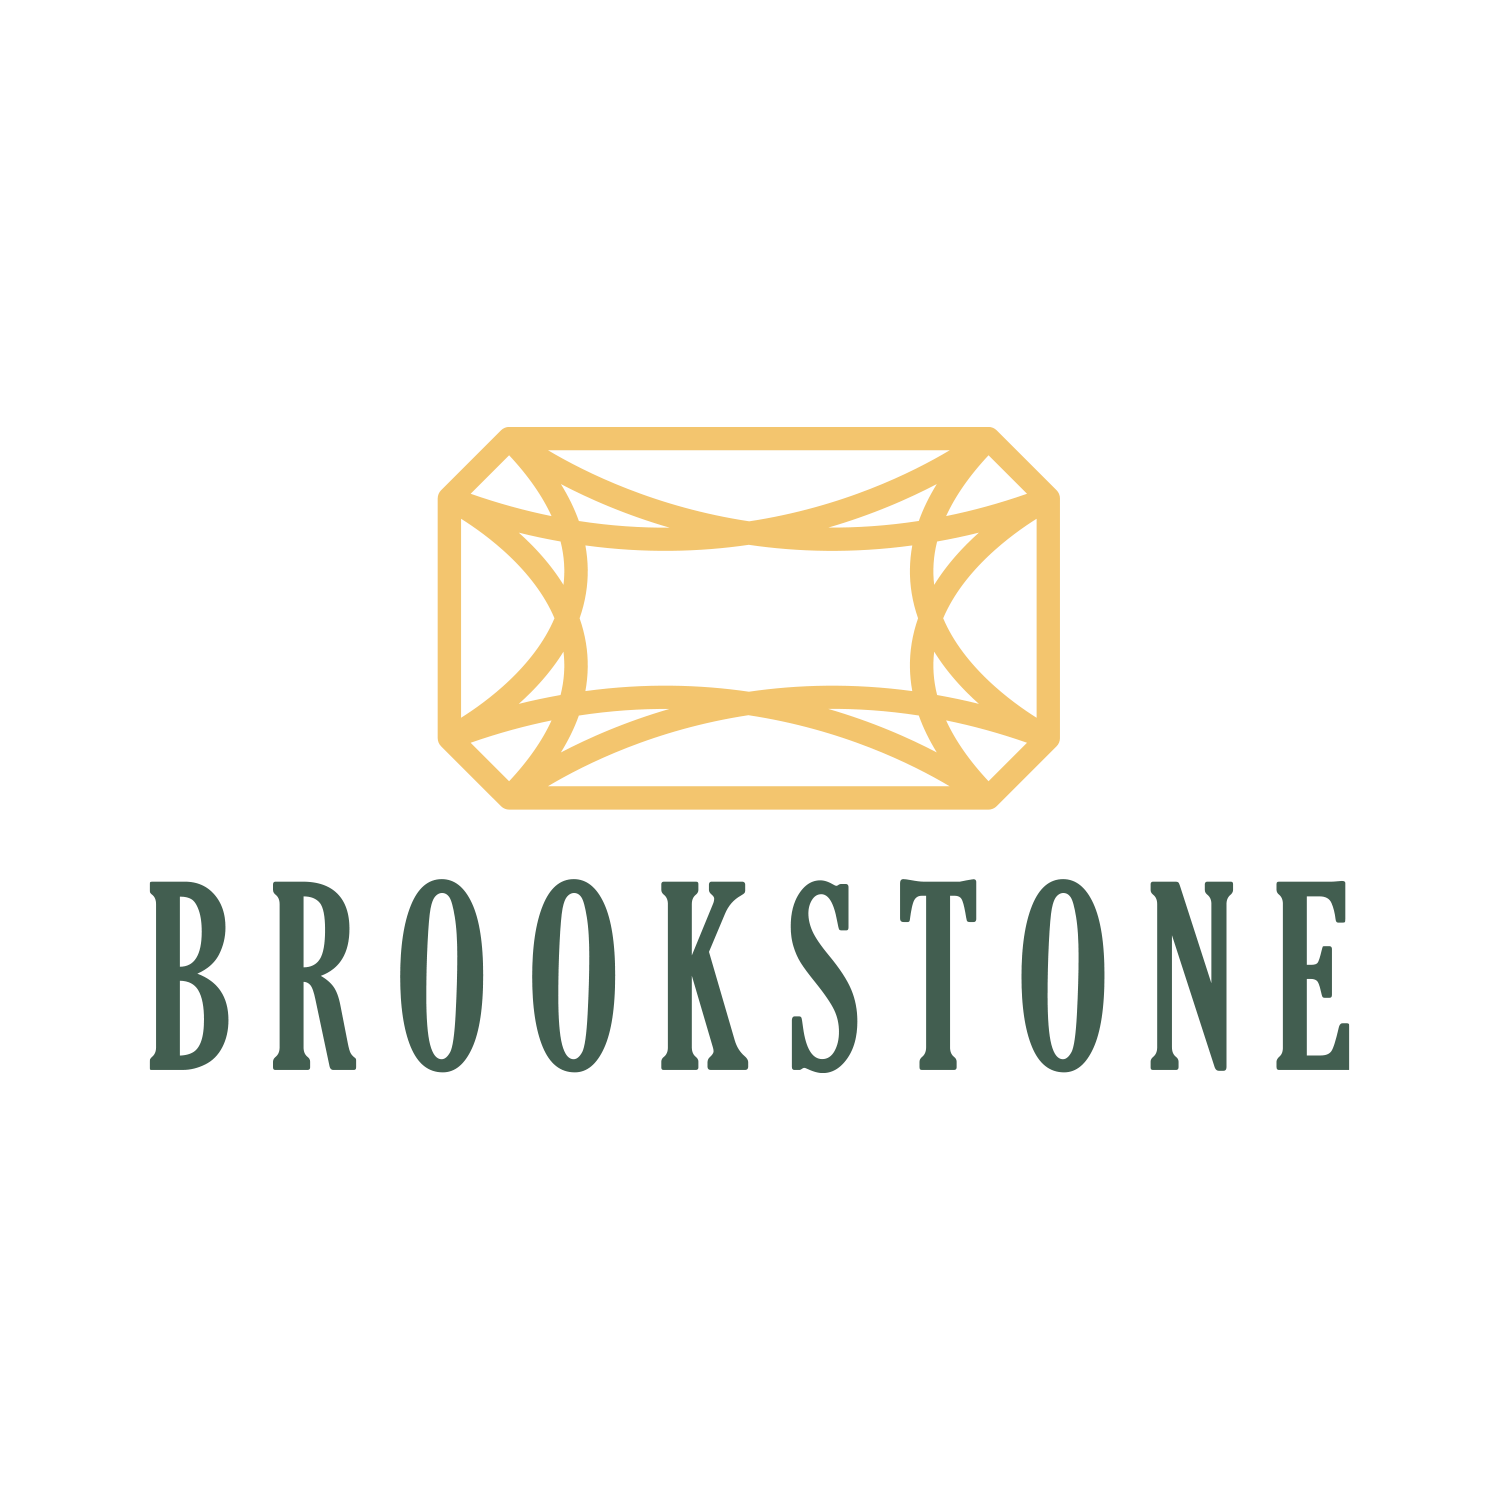 Brookstone Townhomes Logo Design - Milliken, CO Townhomes